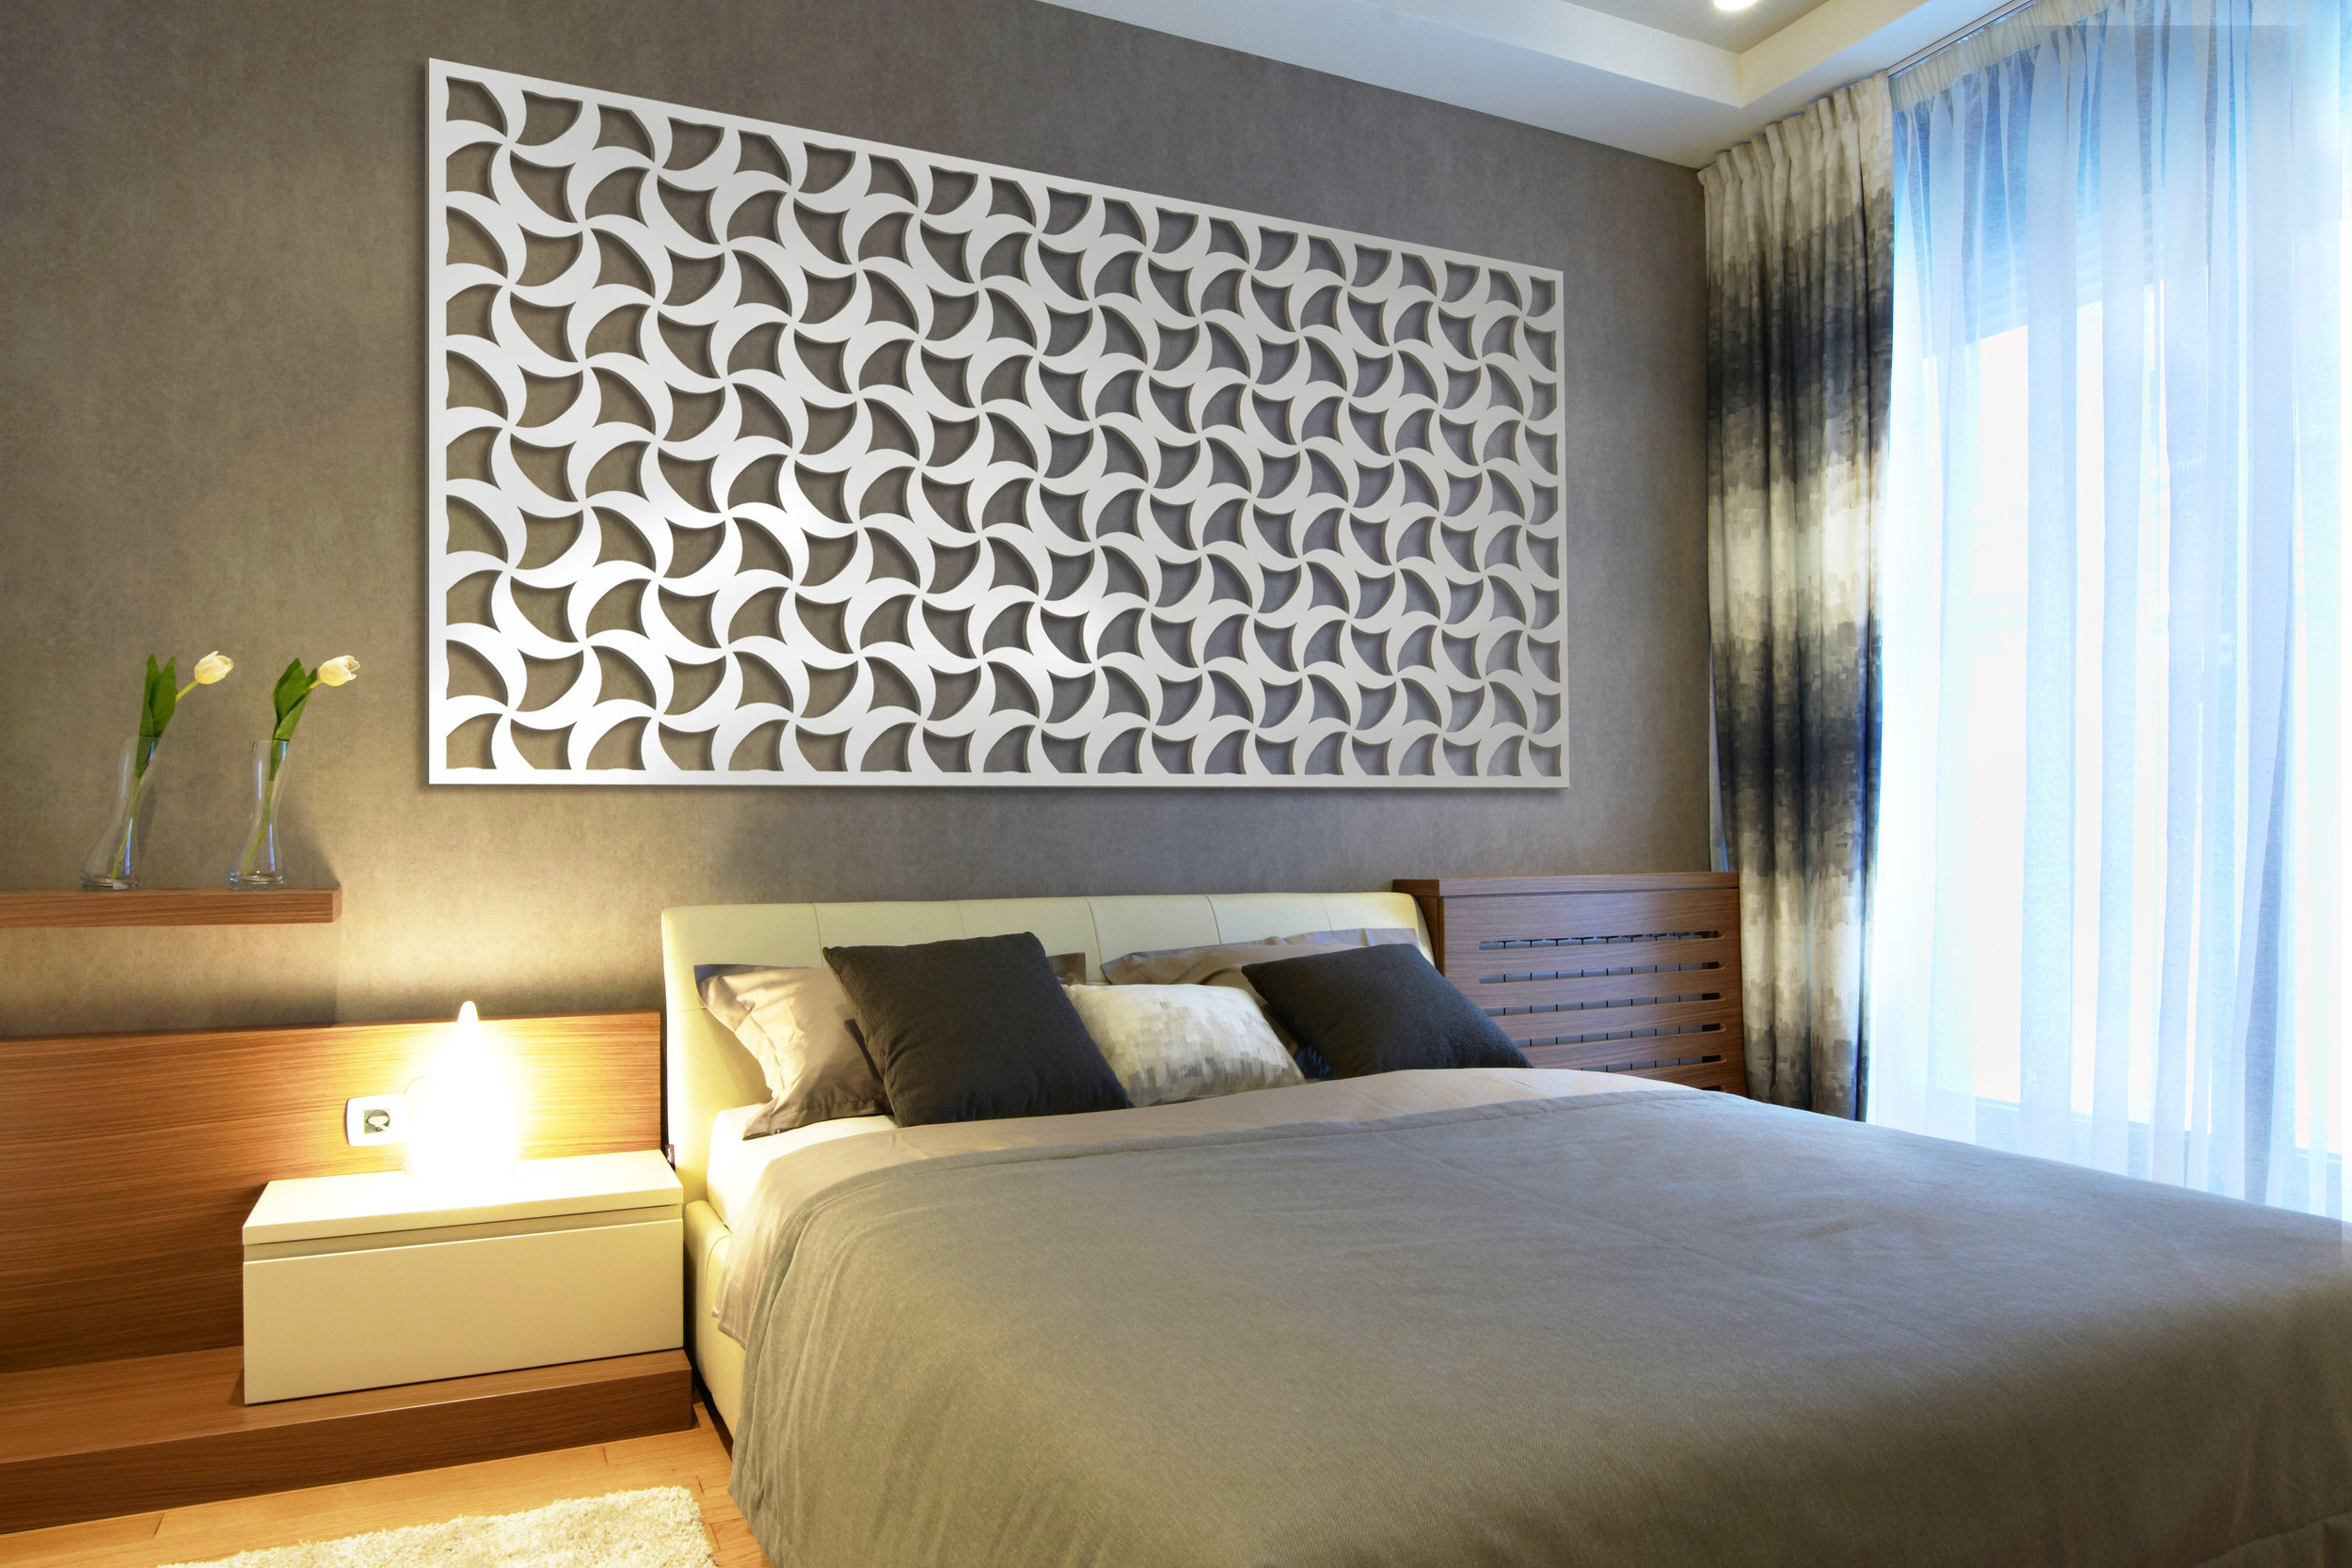 Installation Rendering C   Champagne decorative hotel wall panel - painted